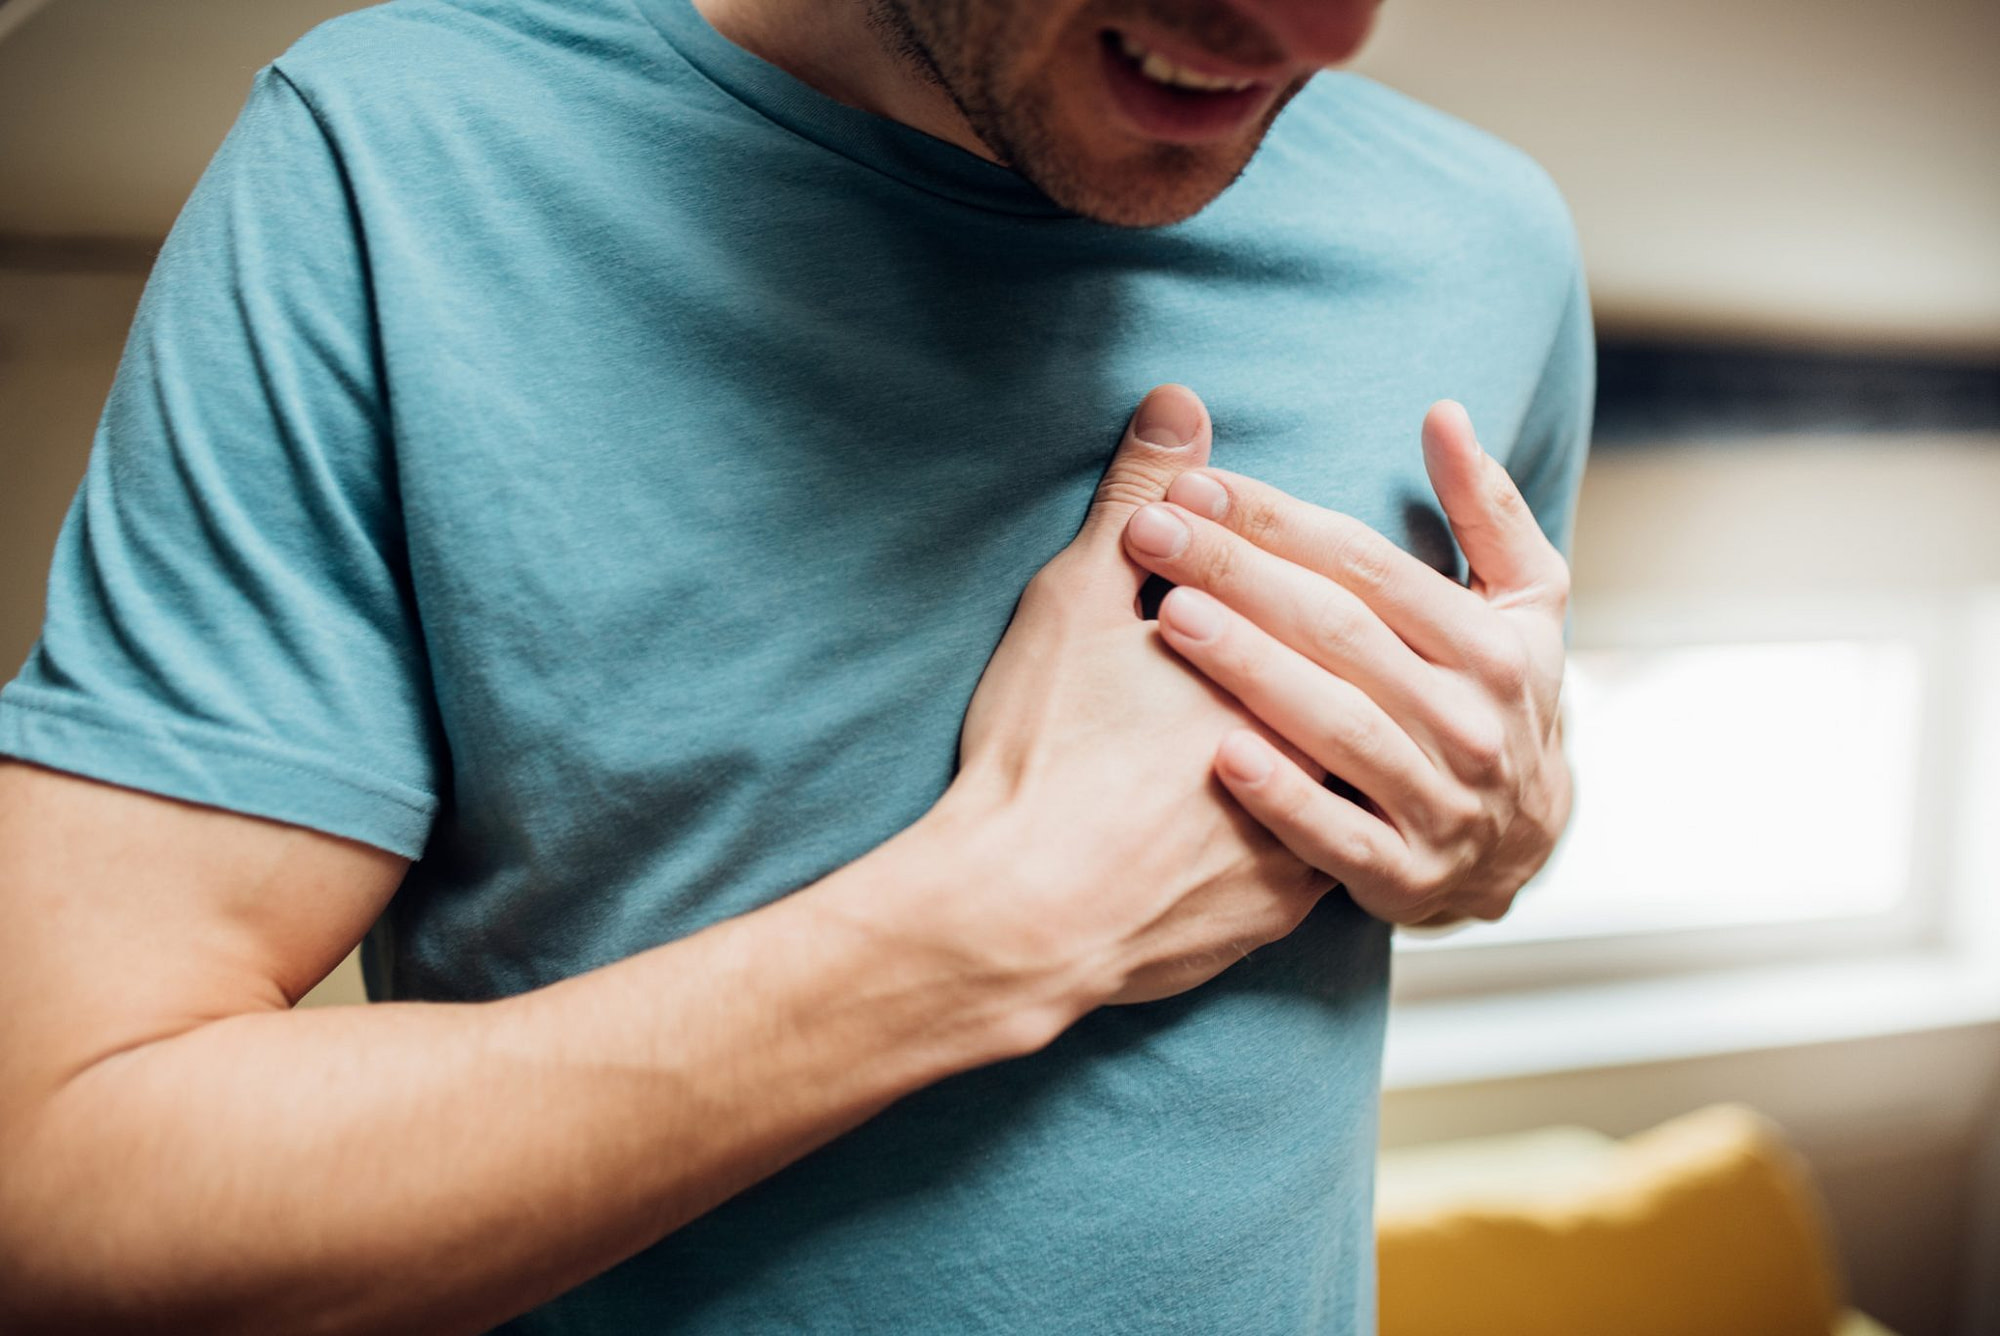 5 Simple Ways to Reduce the Risk of Heart Attacks